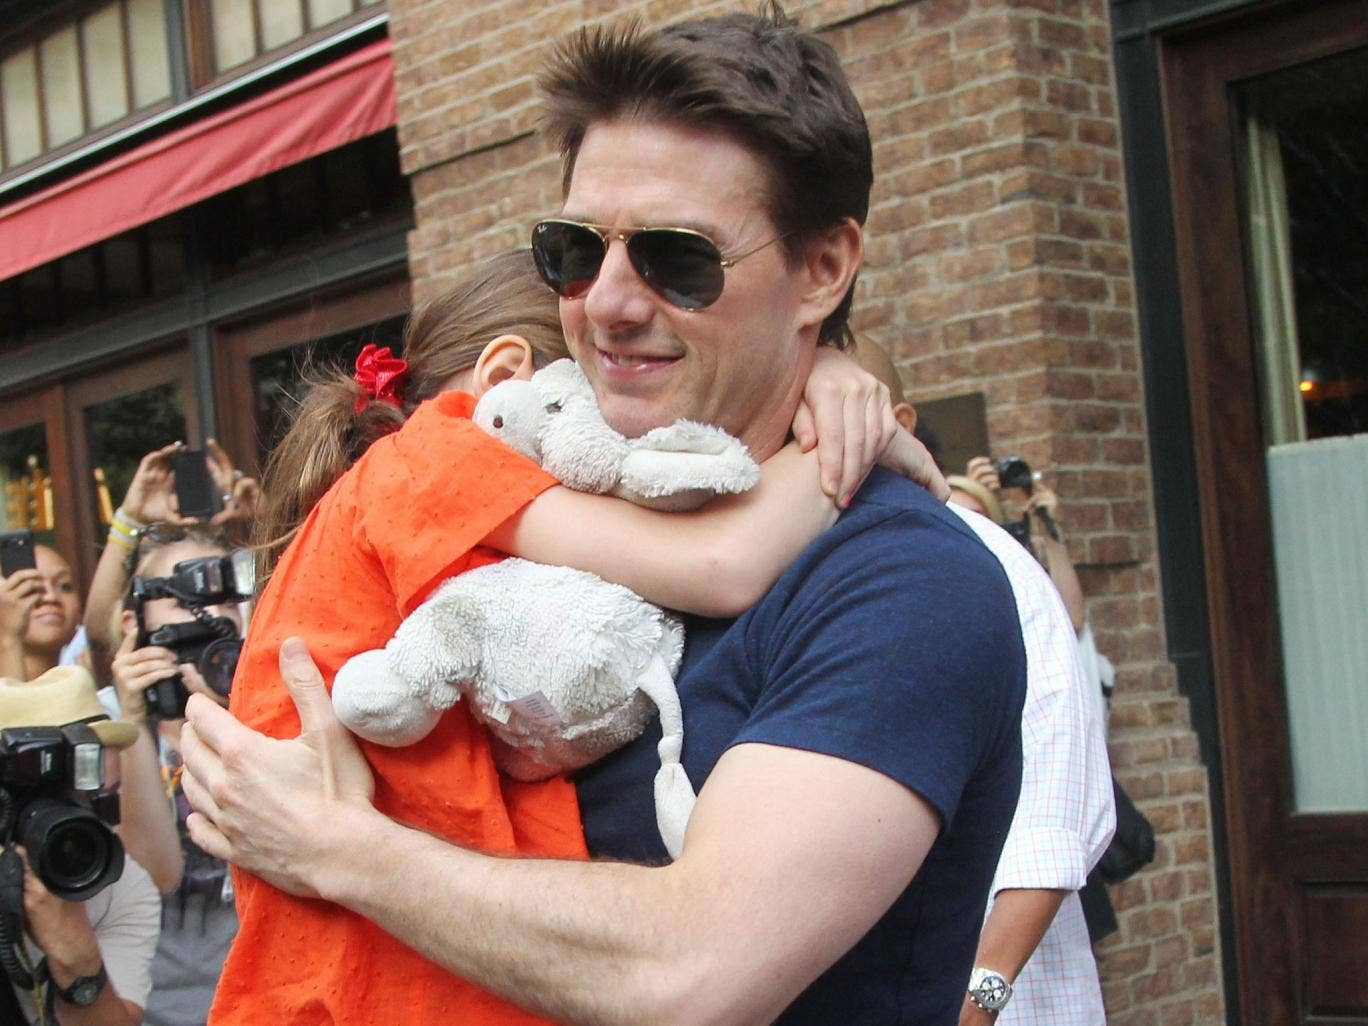 Tom Cruise with his daughter Suri